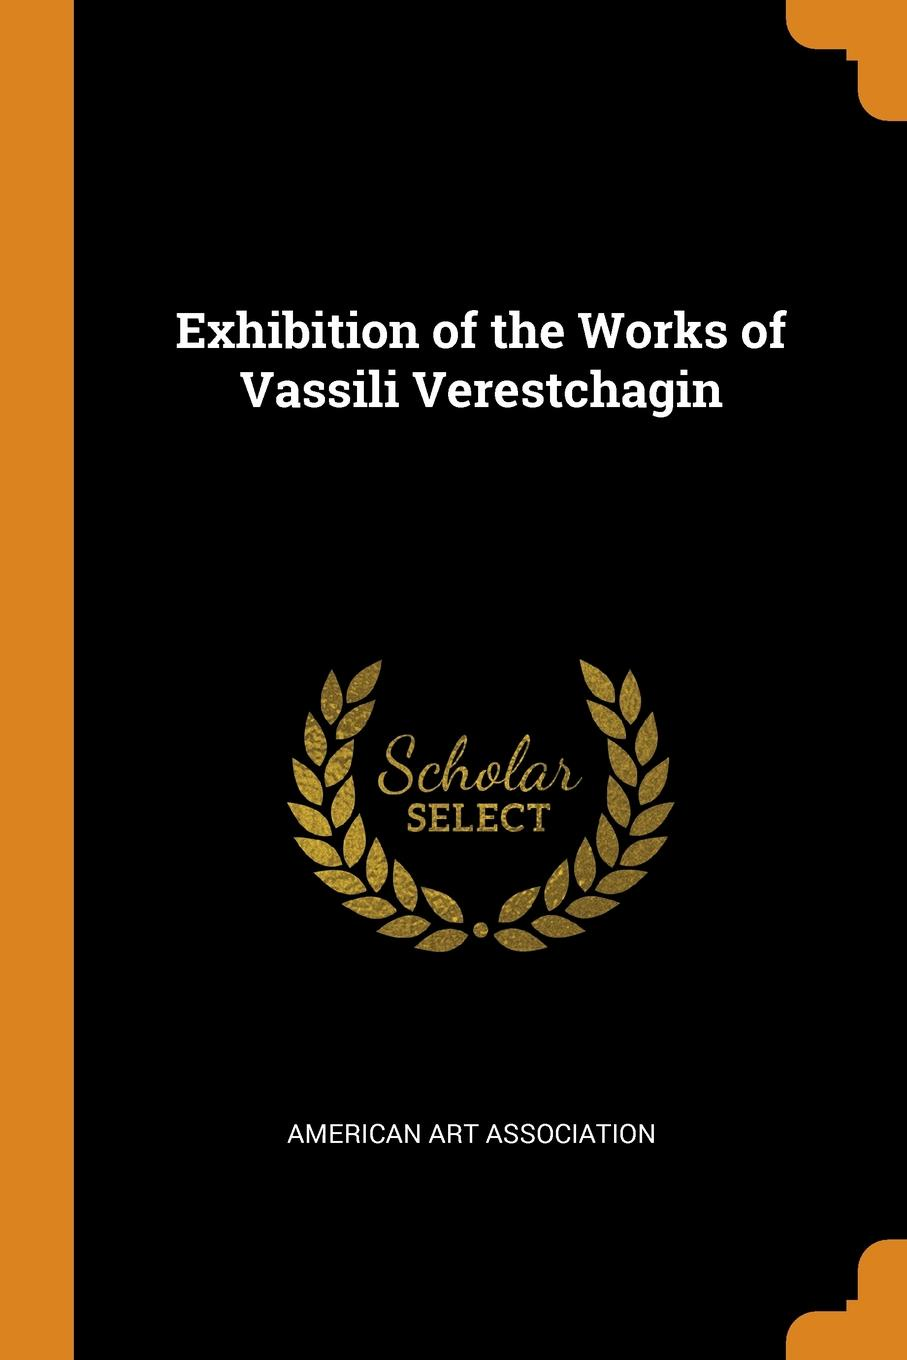 Exhibition of the Works of Vassili Verestchagin